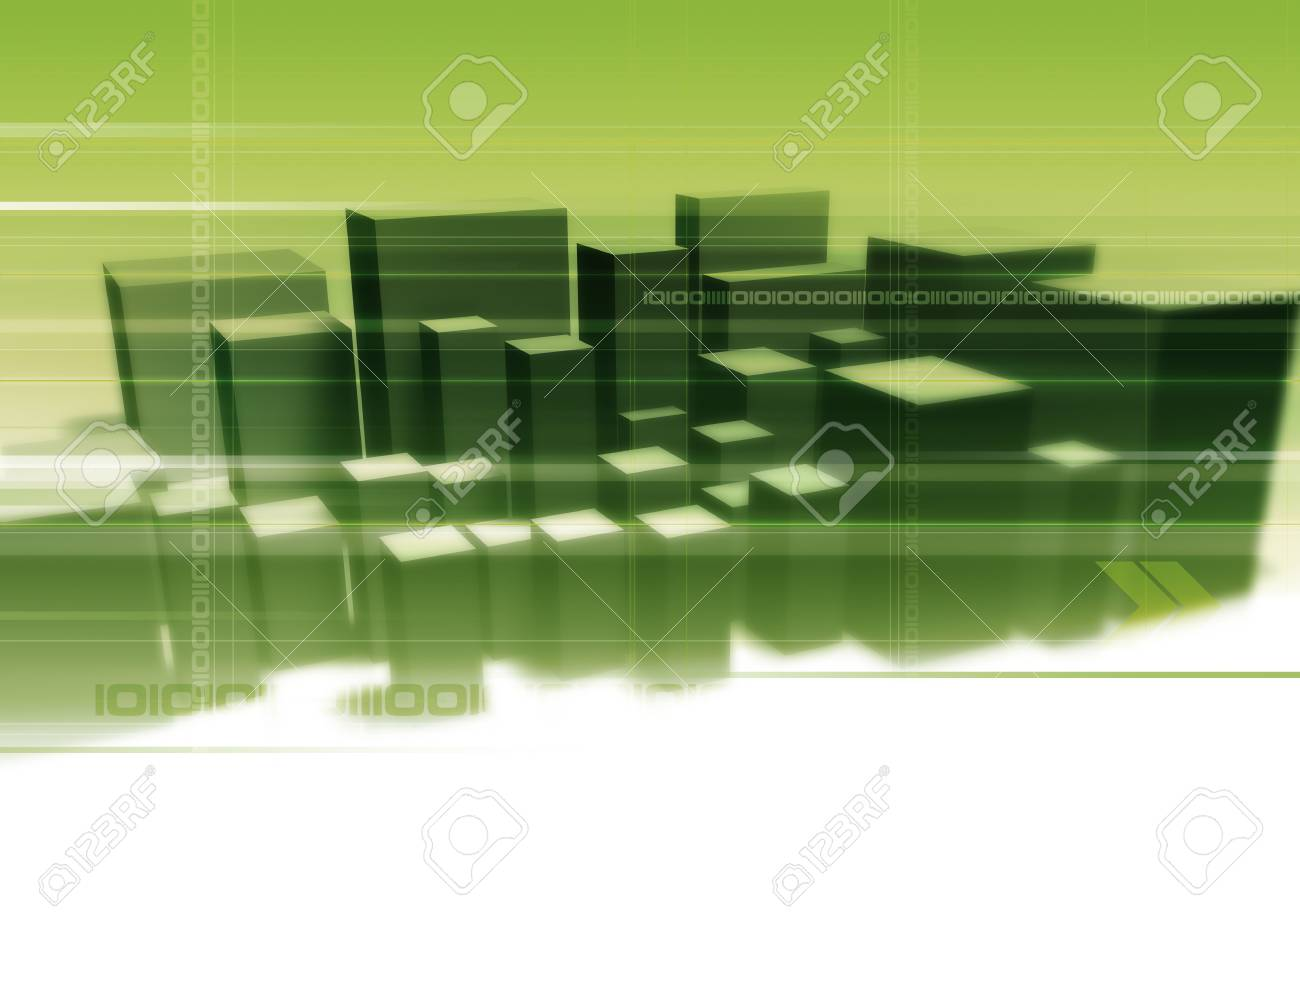 Illustration and 3D-Rendering of an abstract city. Stock Photo - 922647